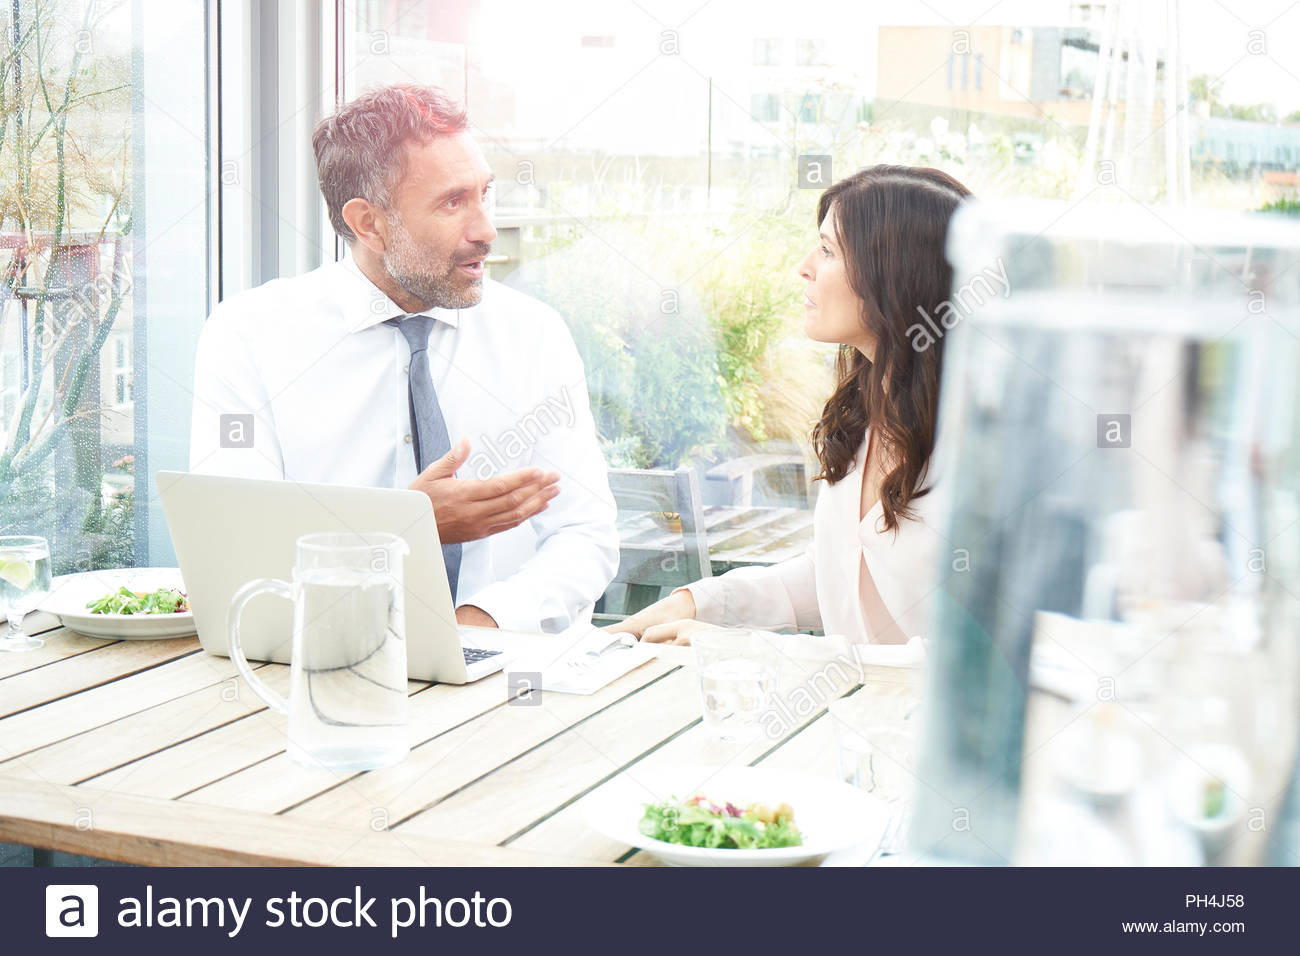 Businesspeople with a laptop at a restaurant meeting - Stock Image